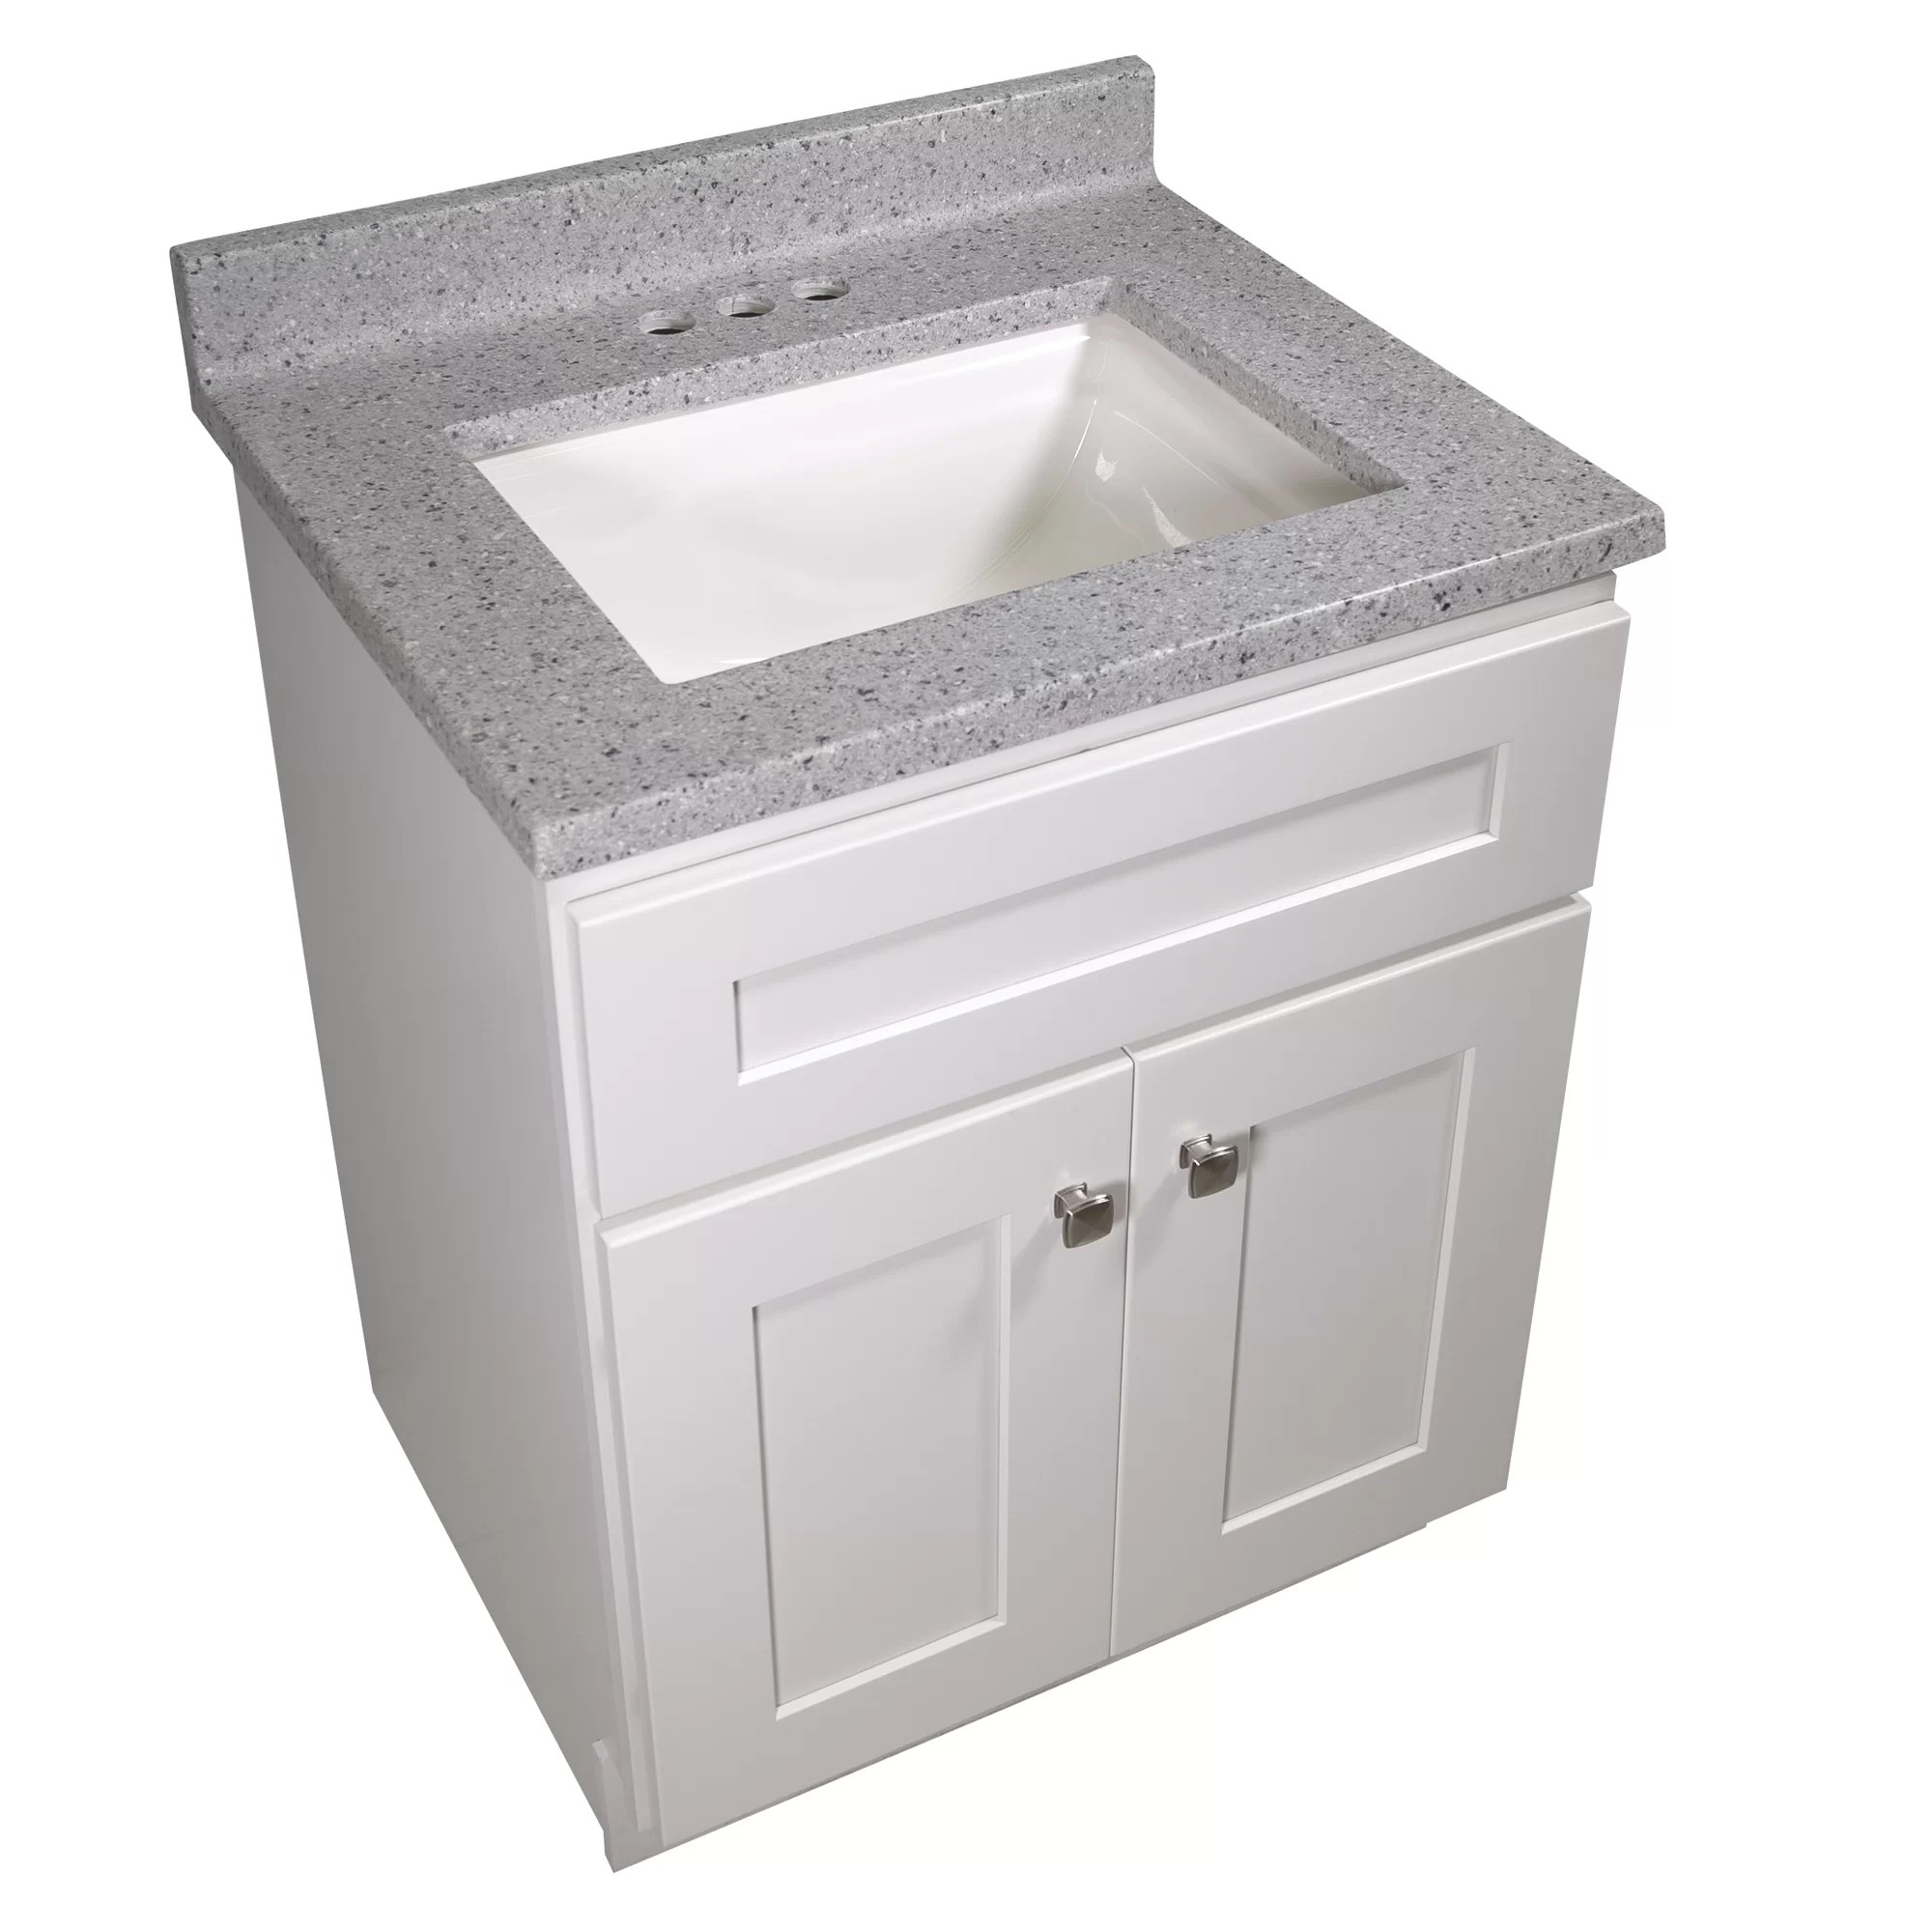 25 in w cultured marble vanity top in moonscape grey with solid white basin and 4 in faucet spread